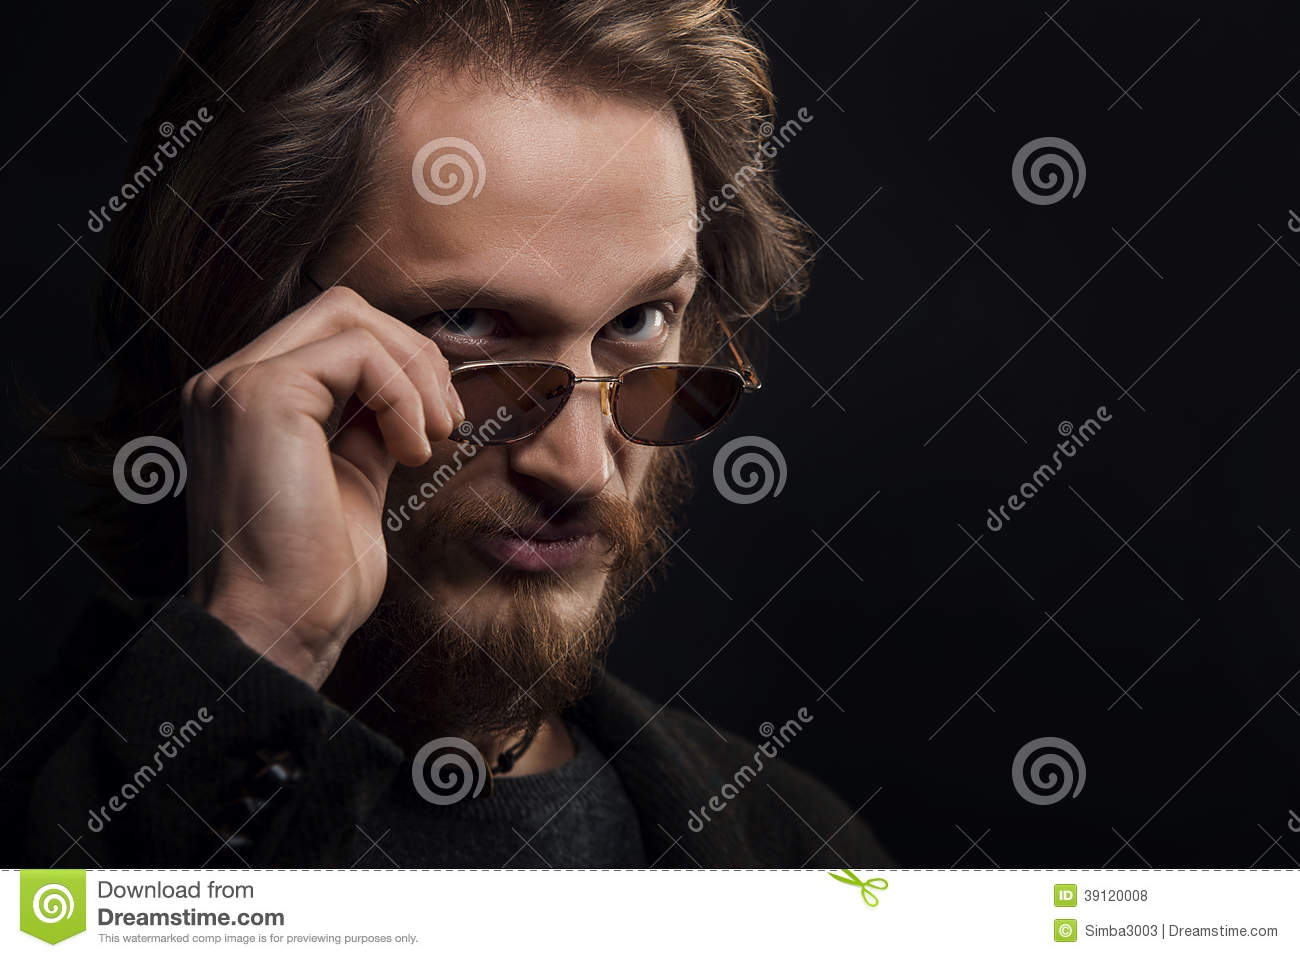 Man With Moustache And Beard Wearing Sunglasses